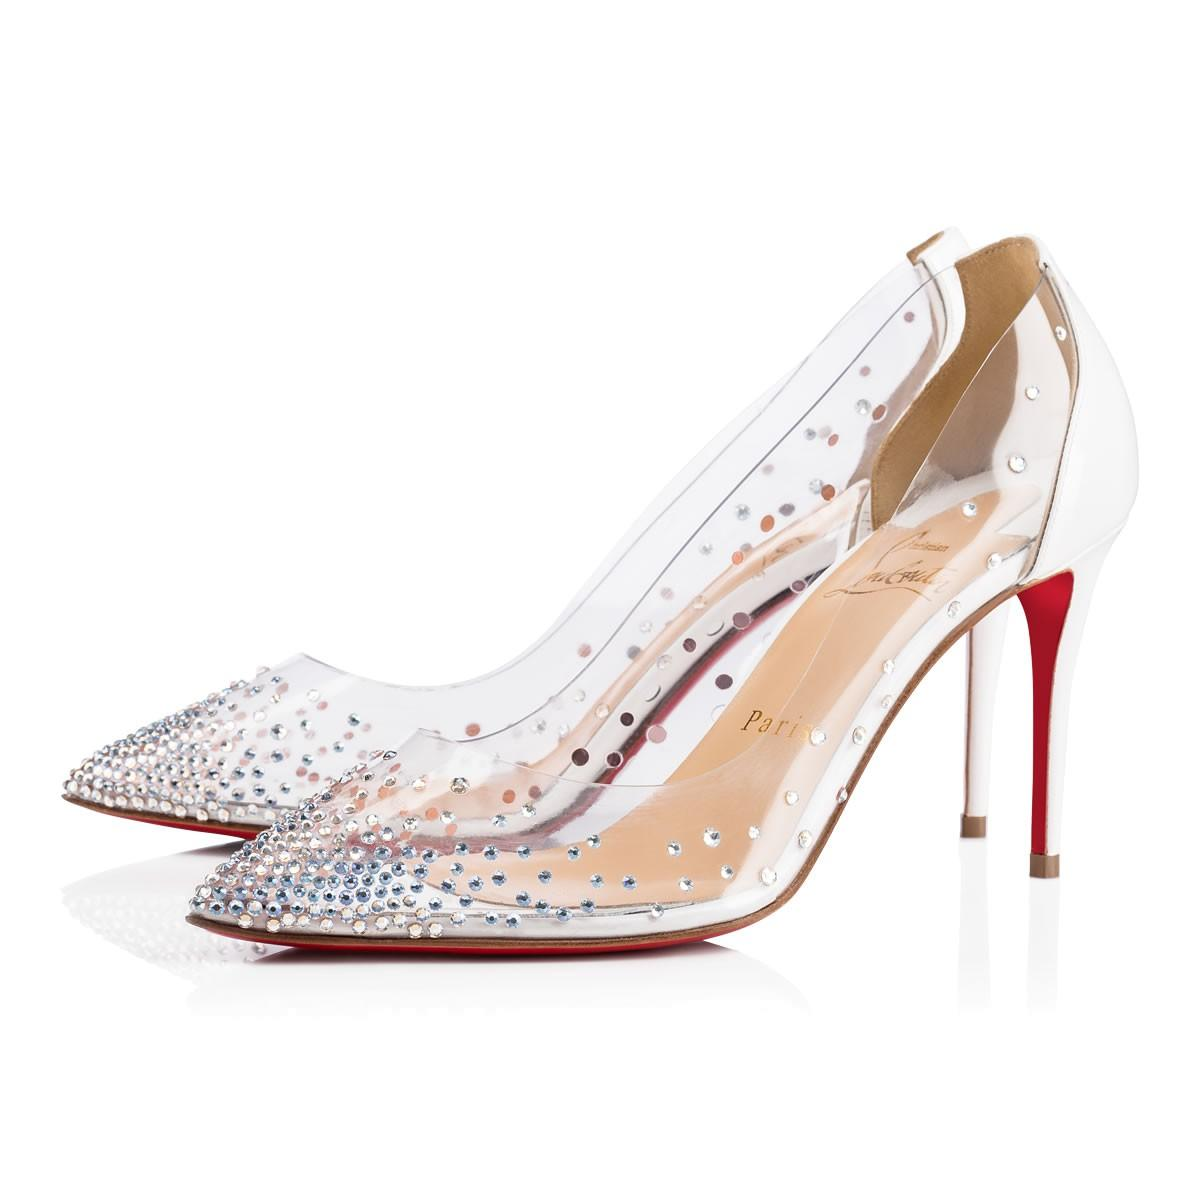 124c7972aab4 Christian Louboutin Degrastrass Pvc In Version Latte